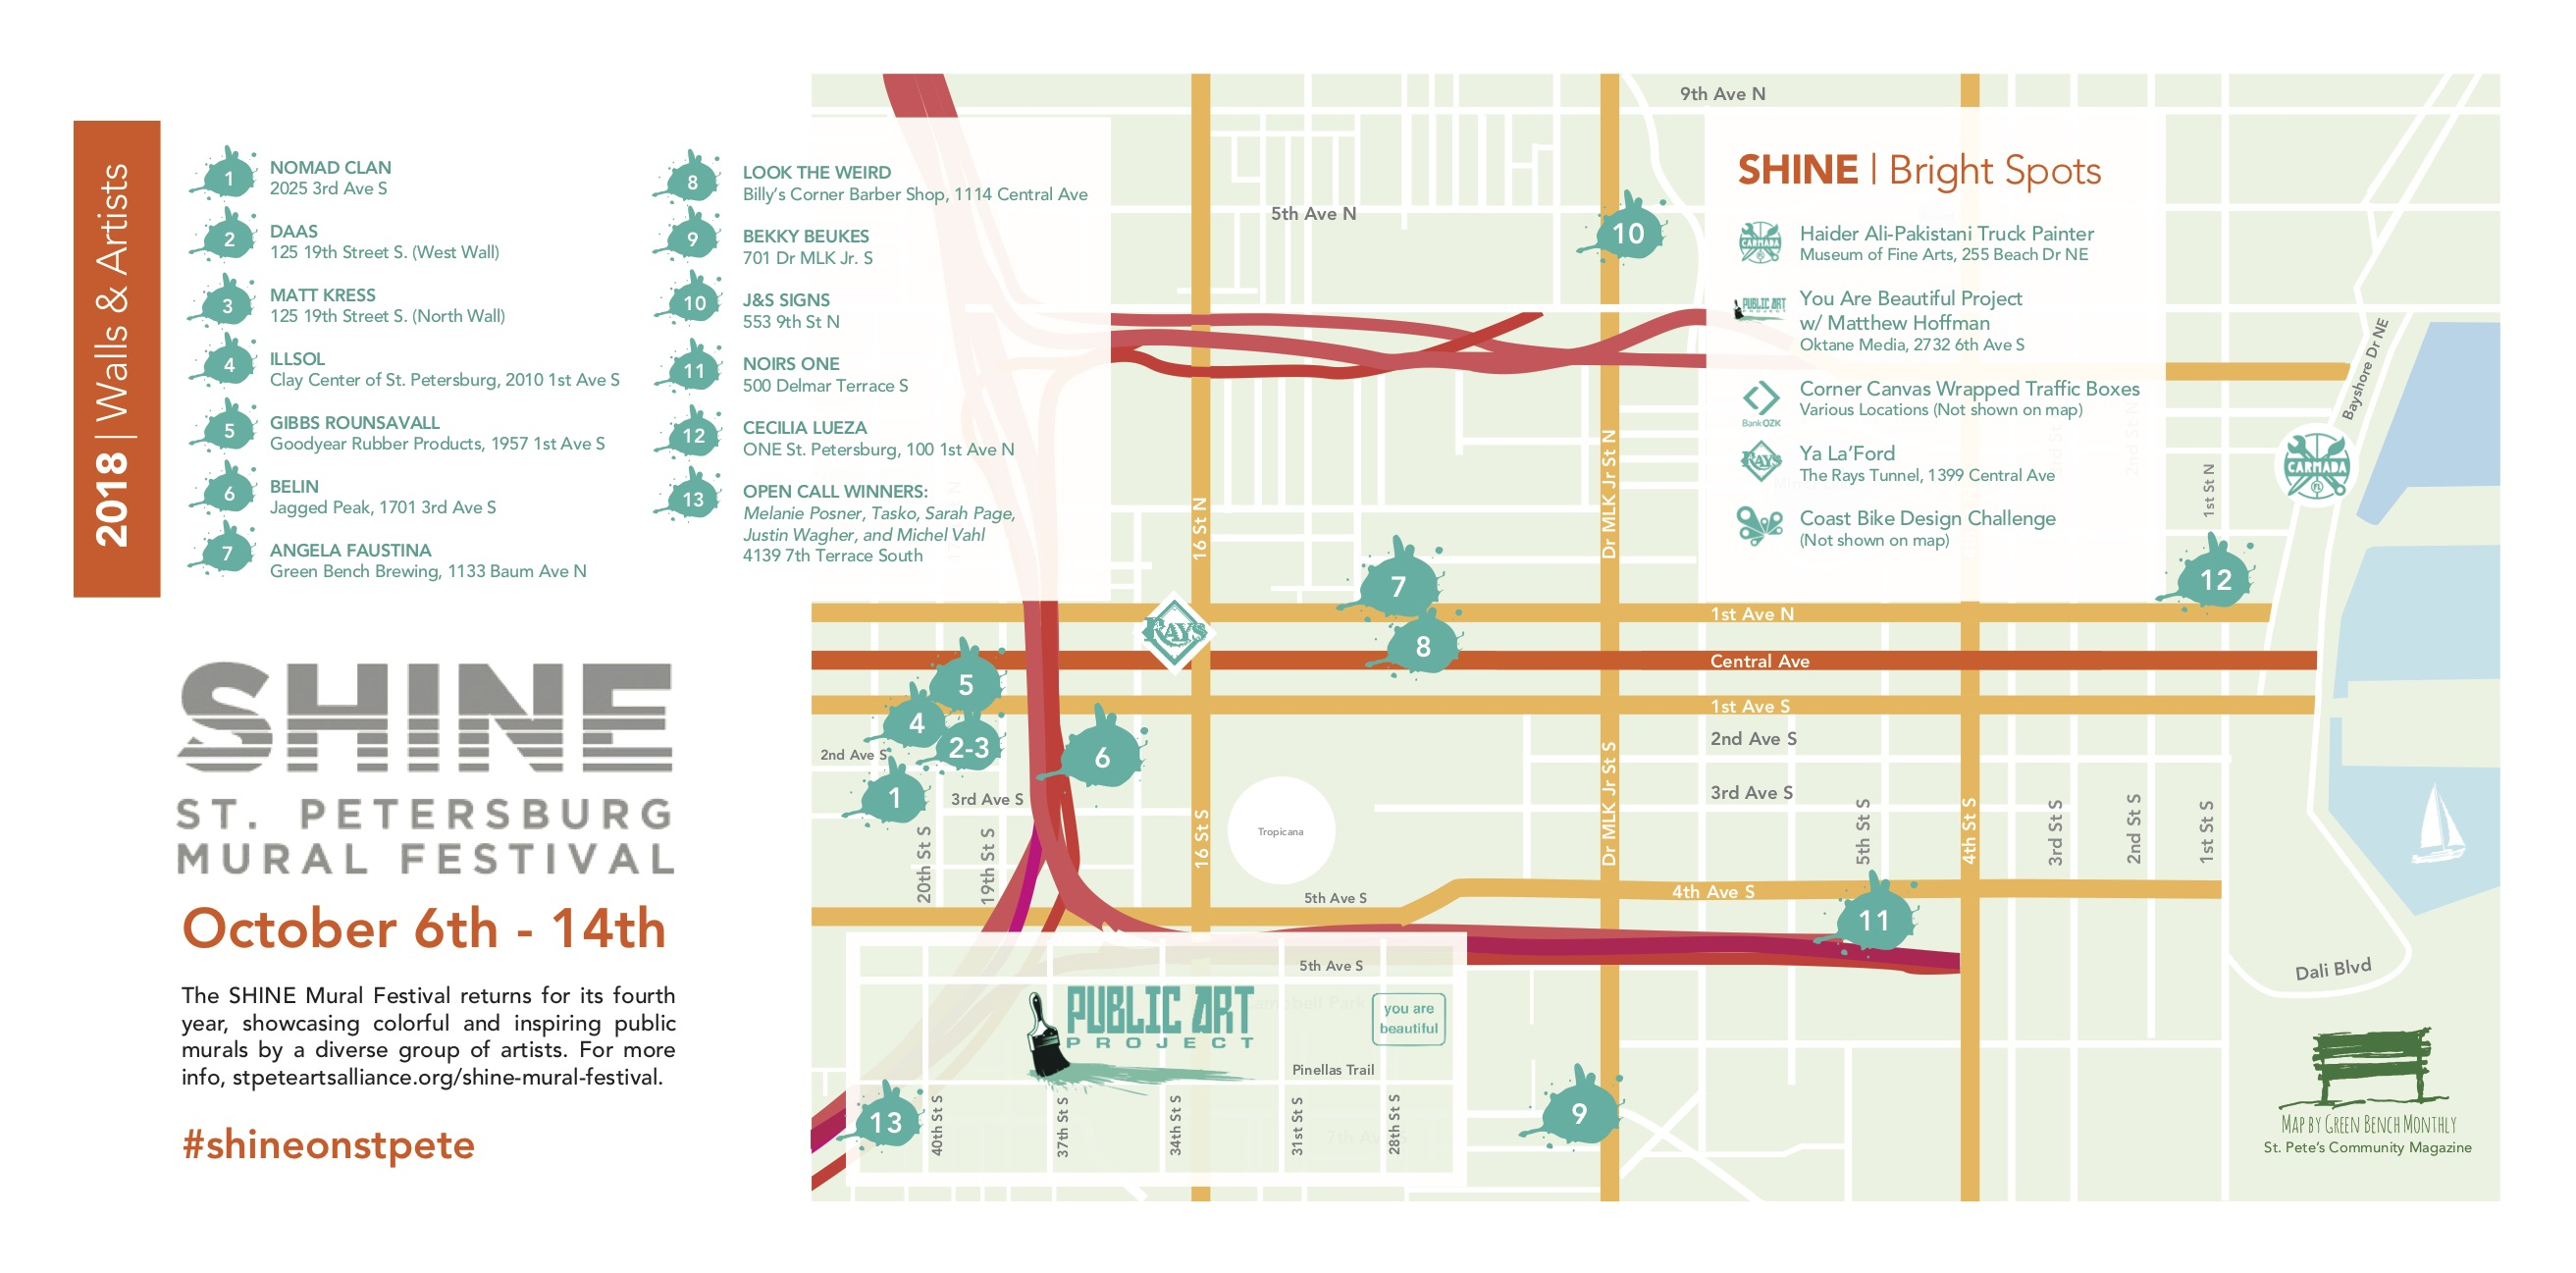 2018 SHINE St. Pete Mural Festival Map